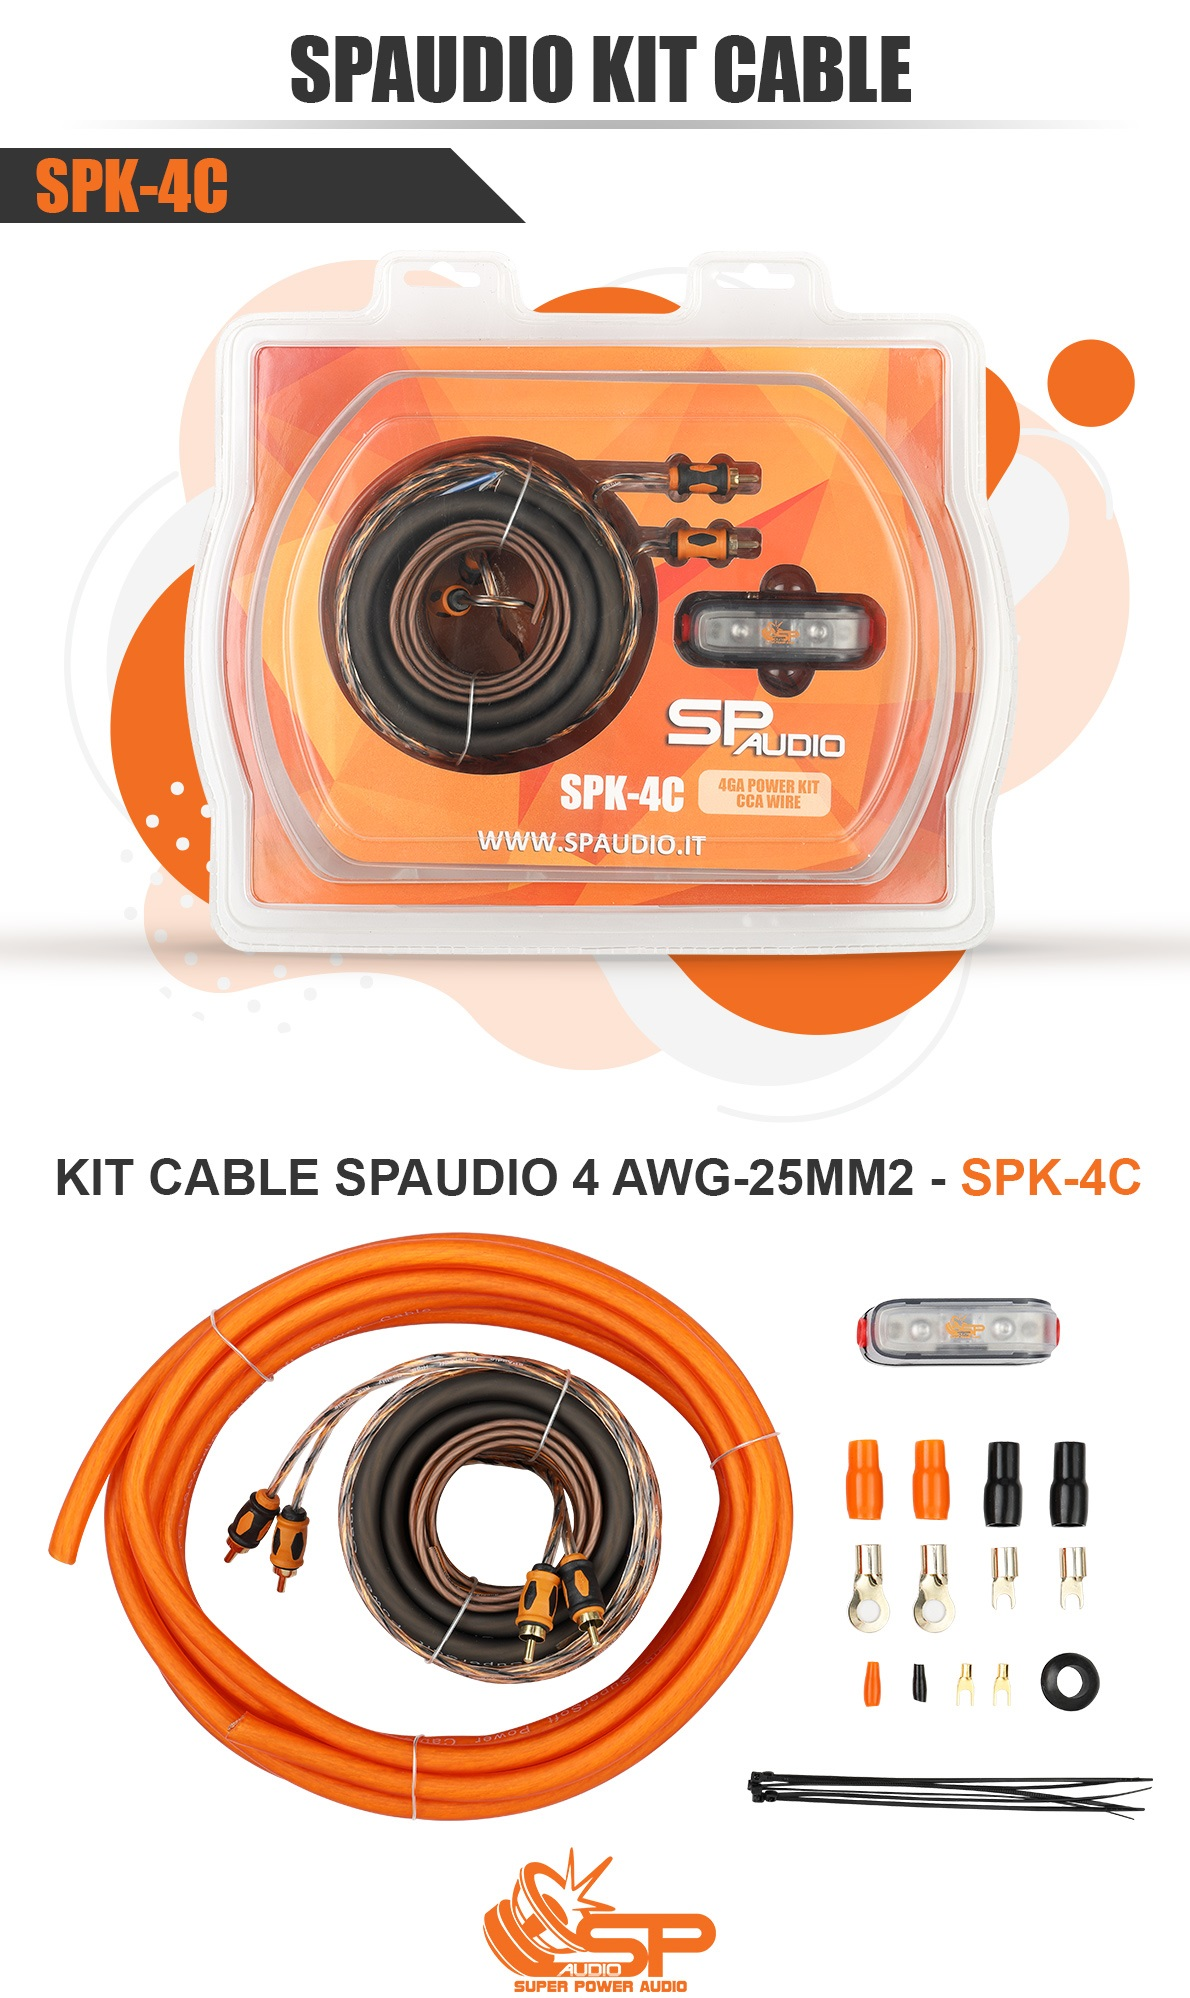 KIT CABLE SPAUDIO 4 AWG/25MM2